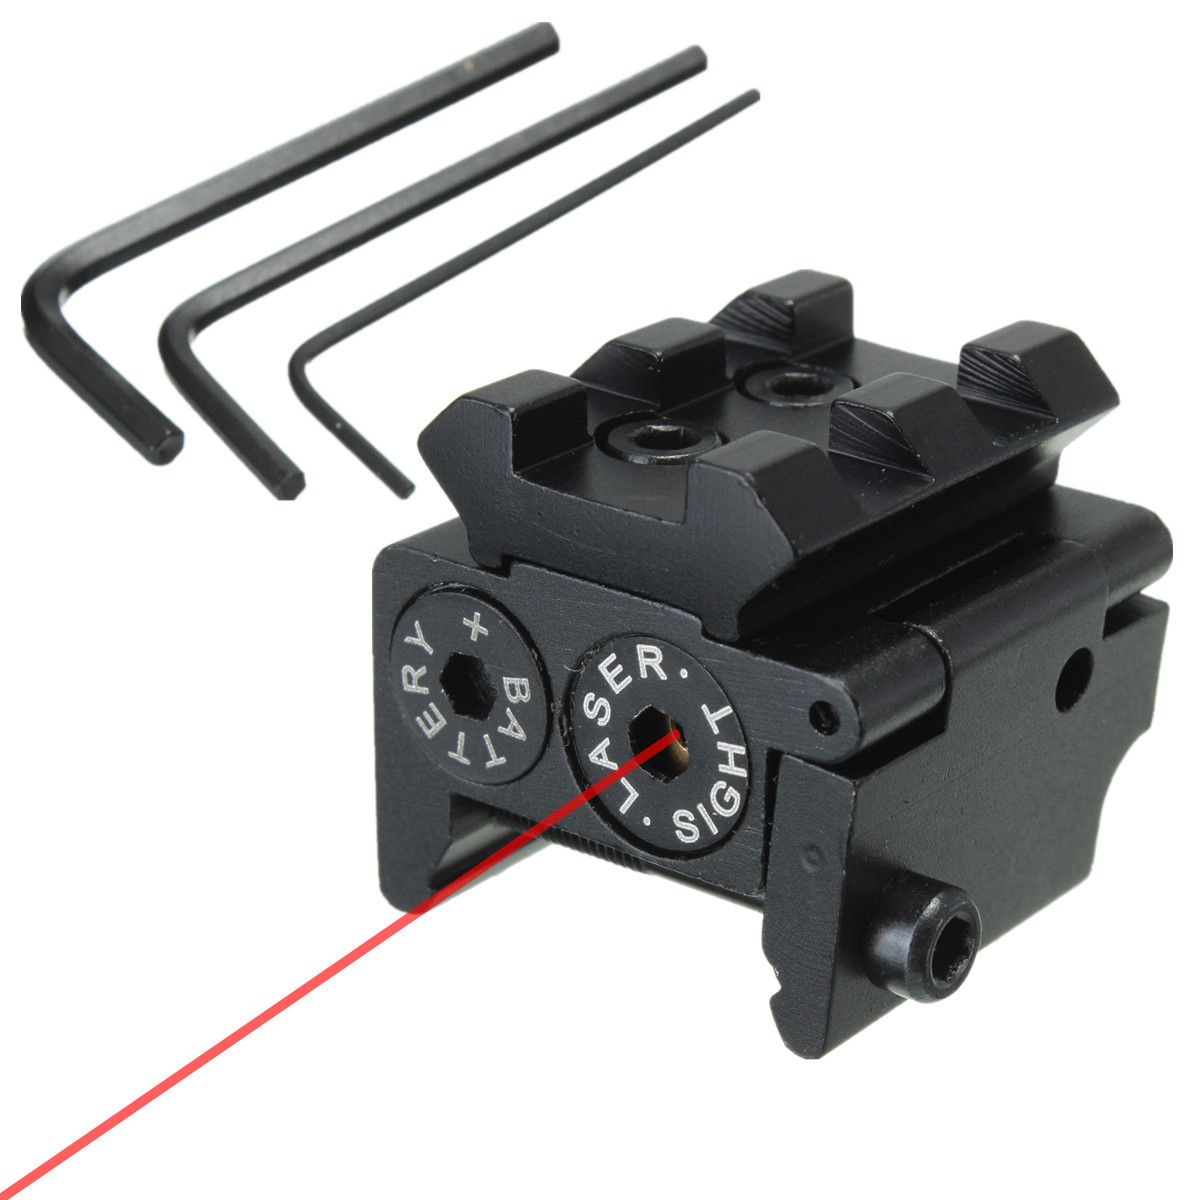 Mini Compact Tactical Red Dot Laser Bore Sight Scope With 20mm Picatinny Rail Mount electro dot sight